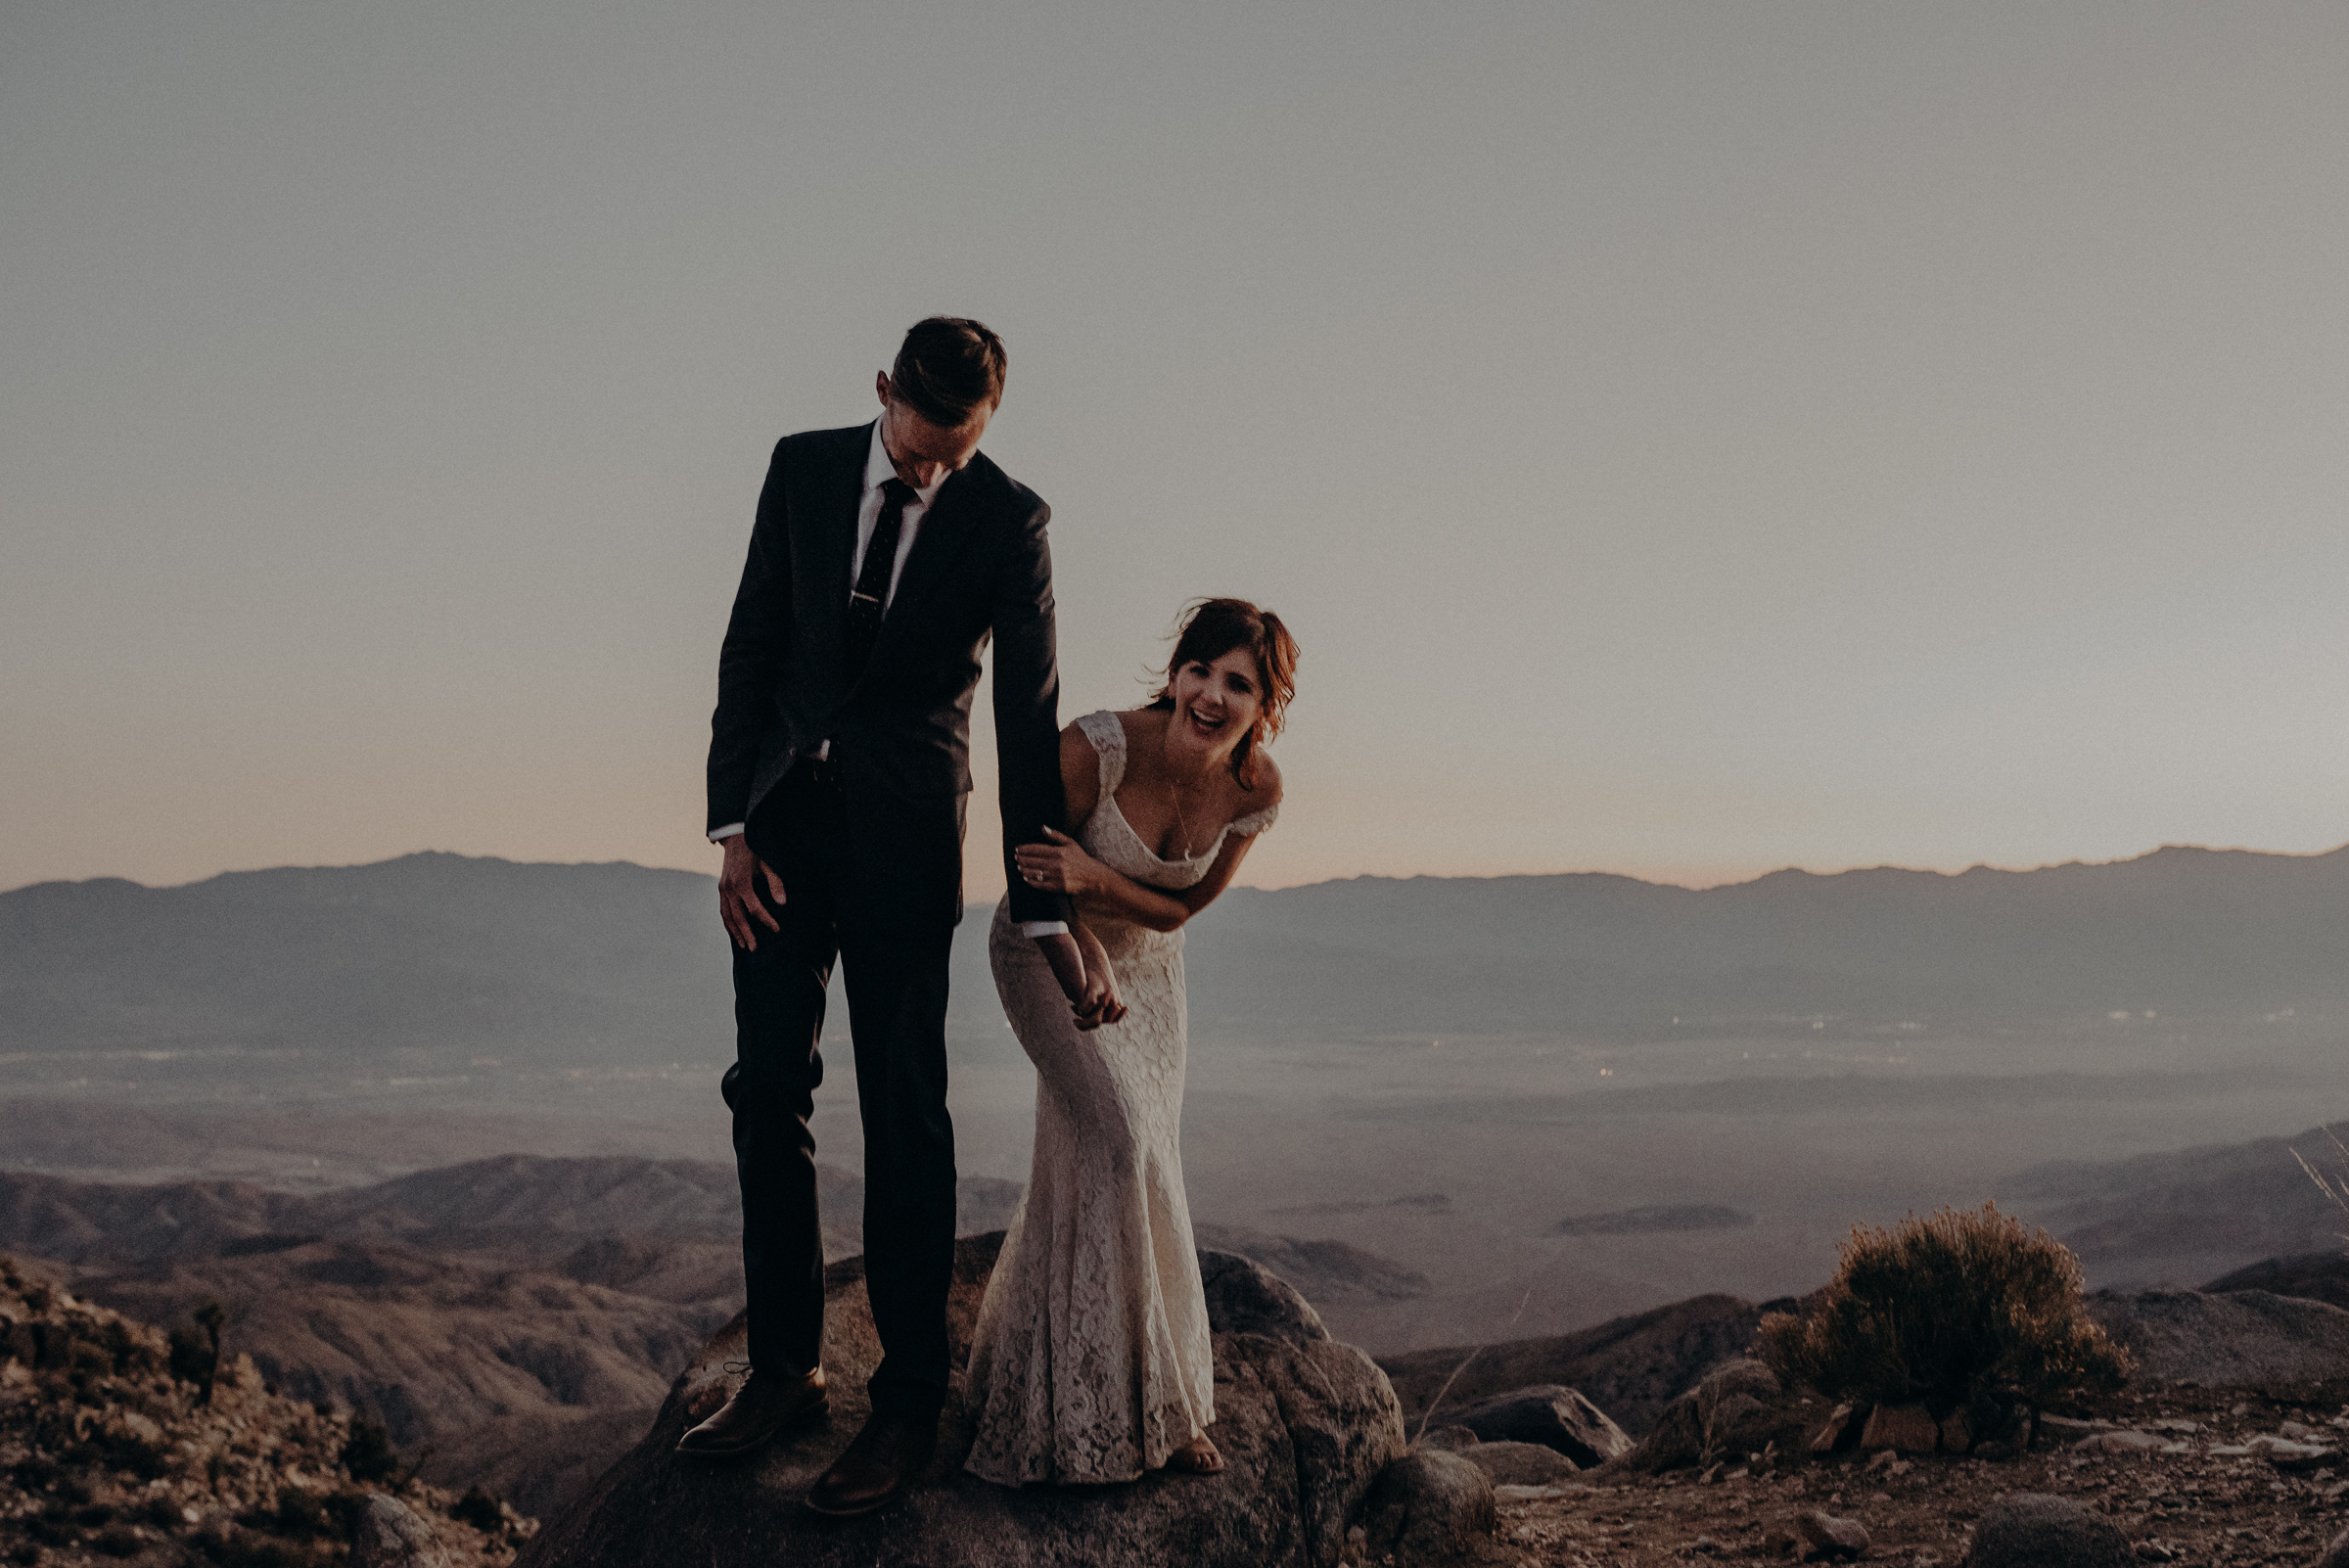 Joshua Tree Elopement - Los Angeles Wedding Photographers - IsaiahAndTaylor.com-129.jpg